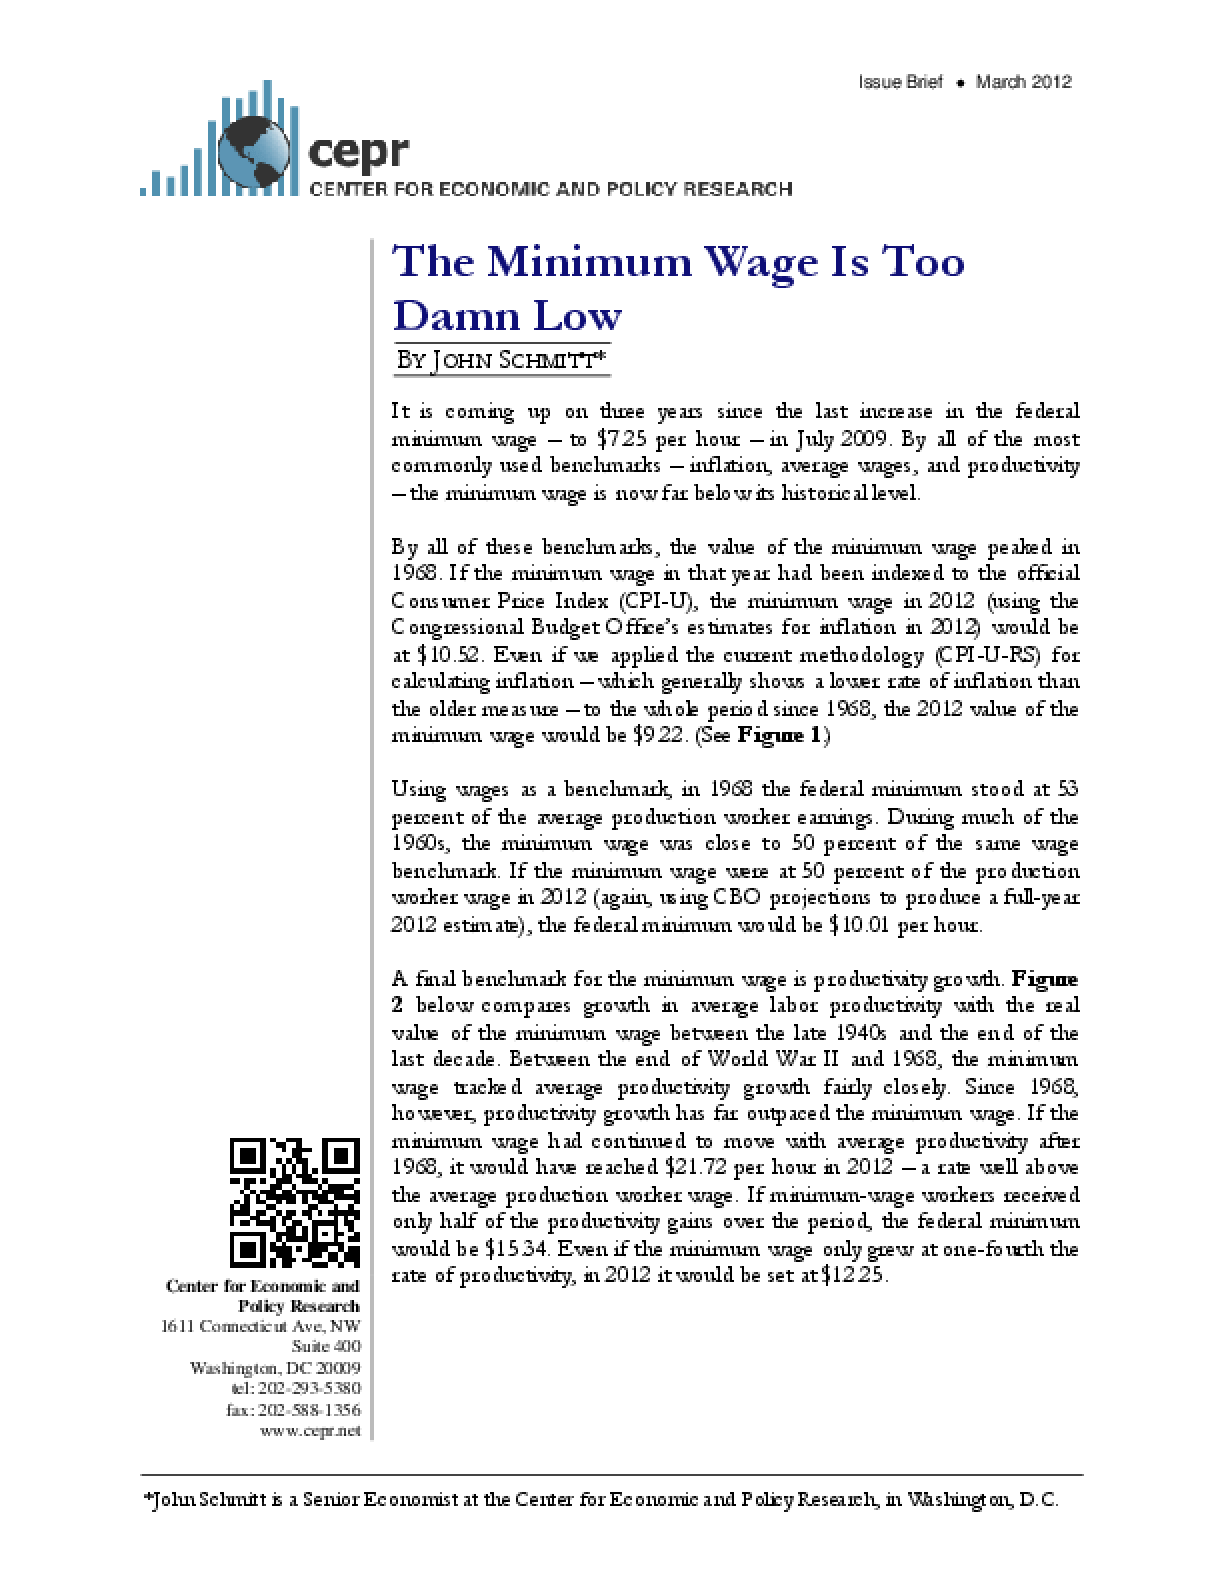 The Minimum Wage Is Too Damn Low